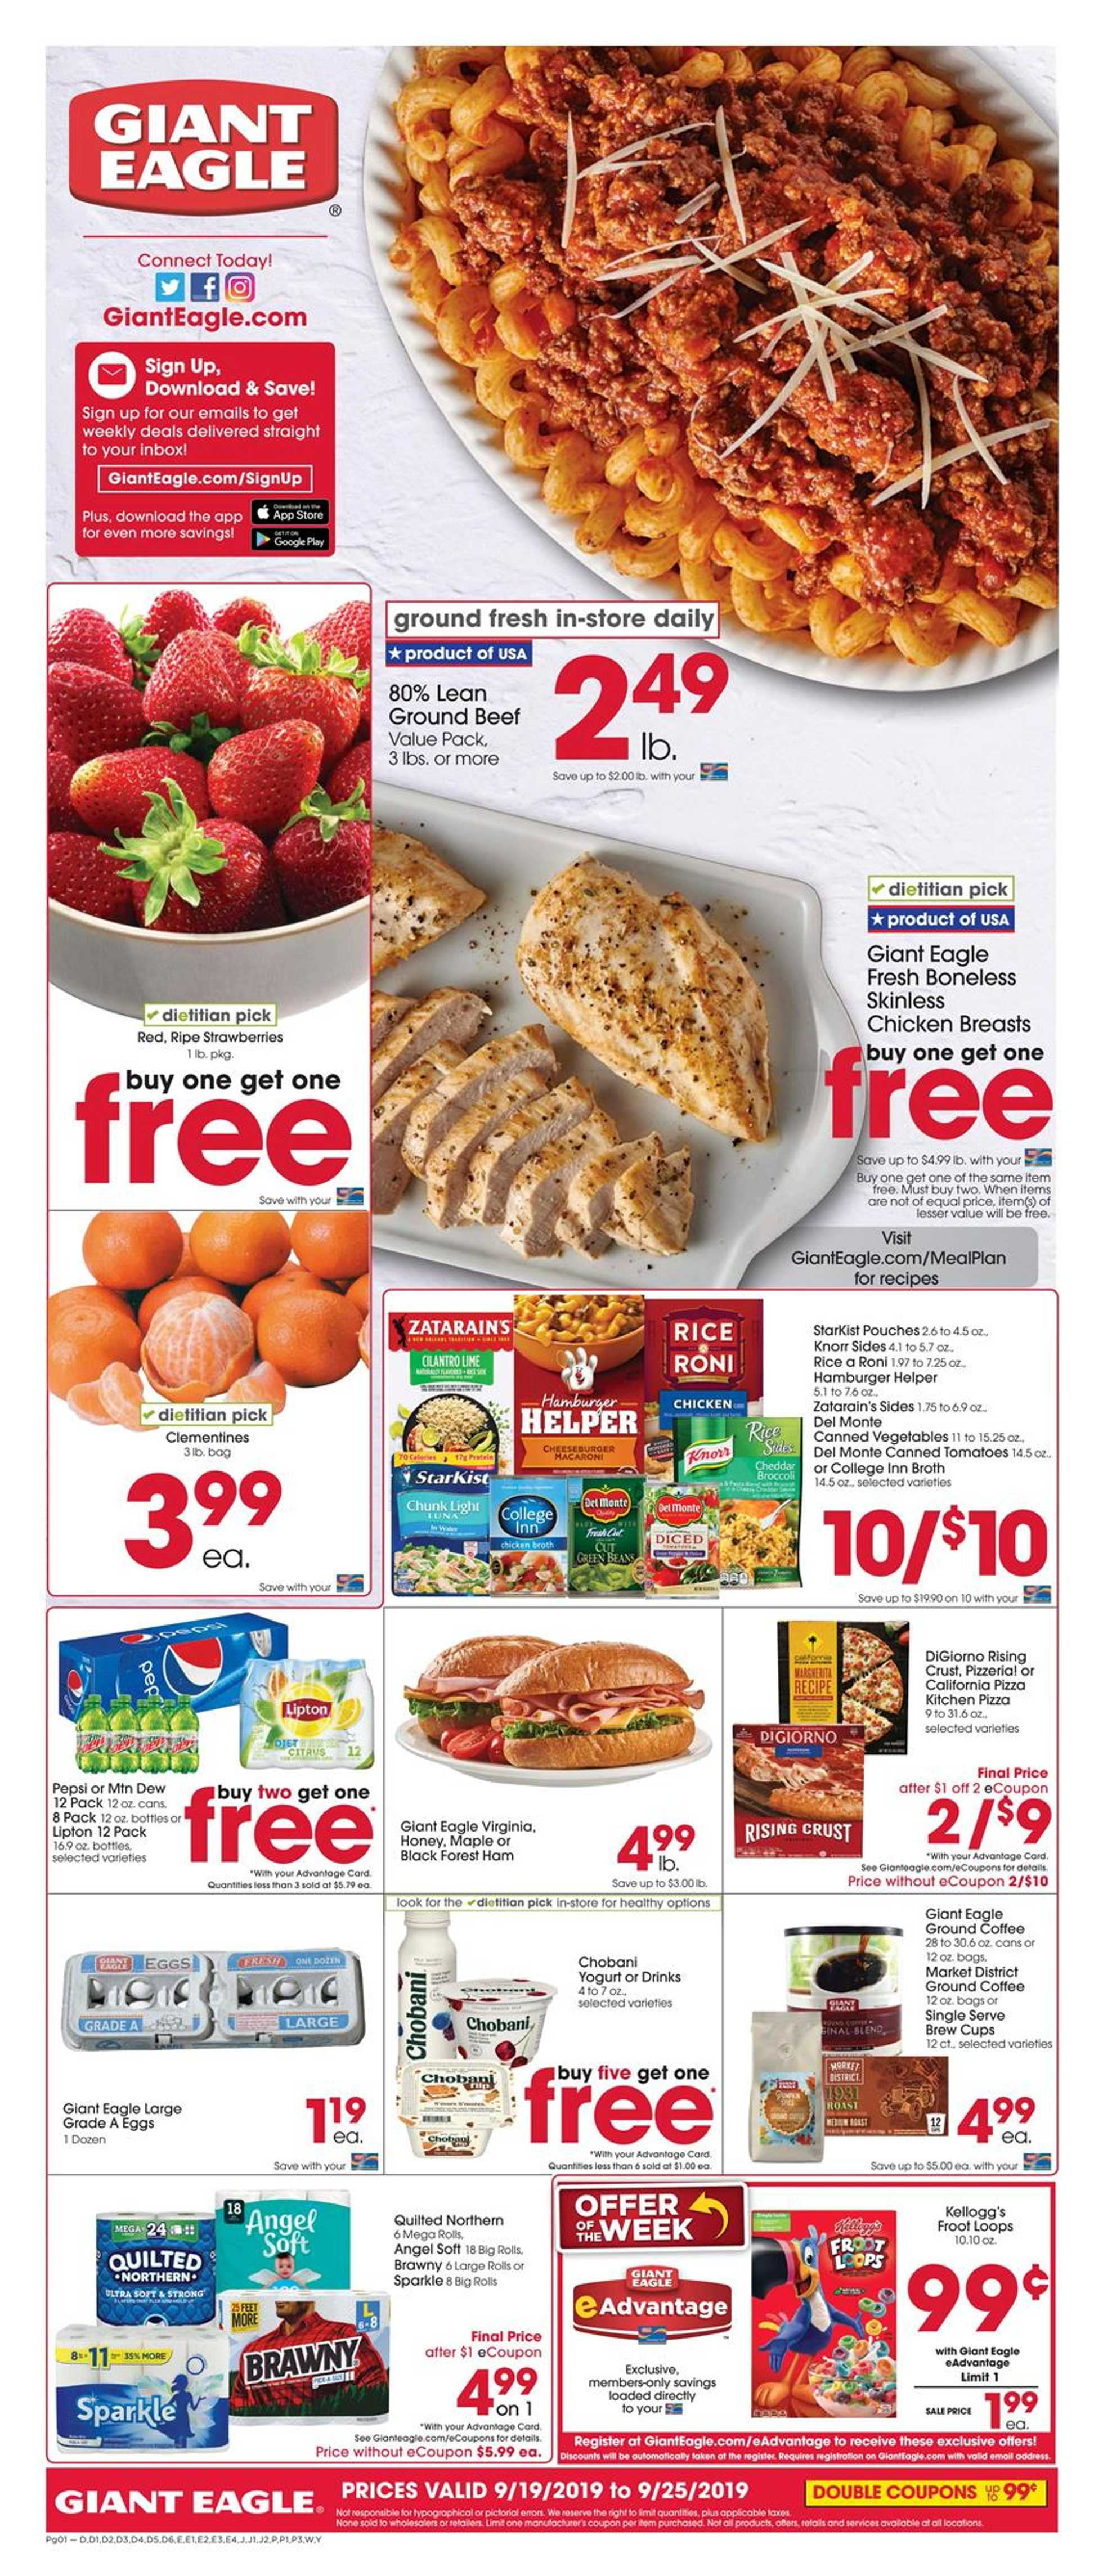 Giant Eagle - promo starting from 09/19/19 - page 1